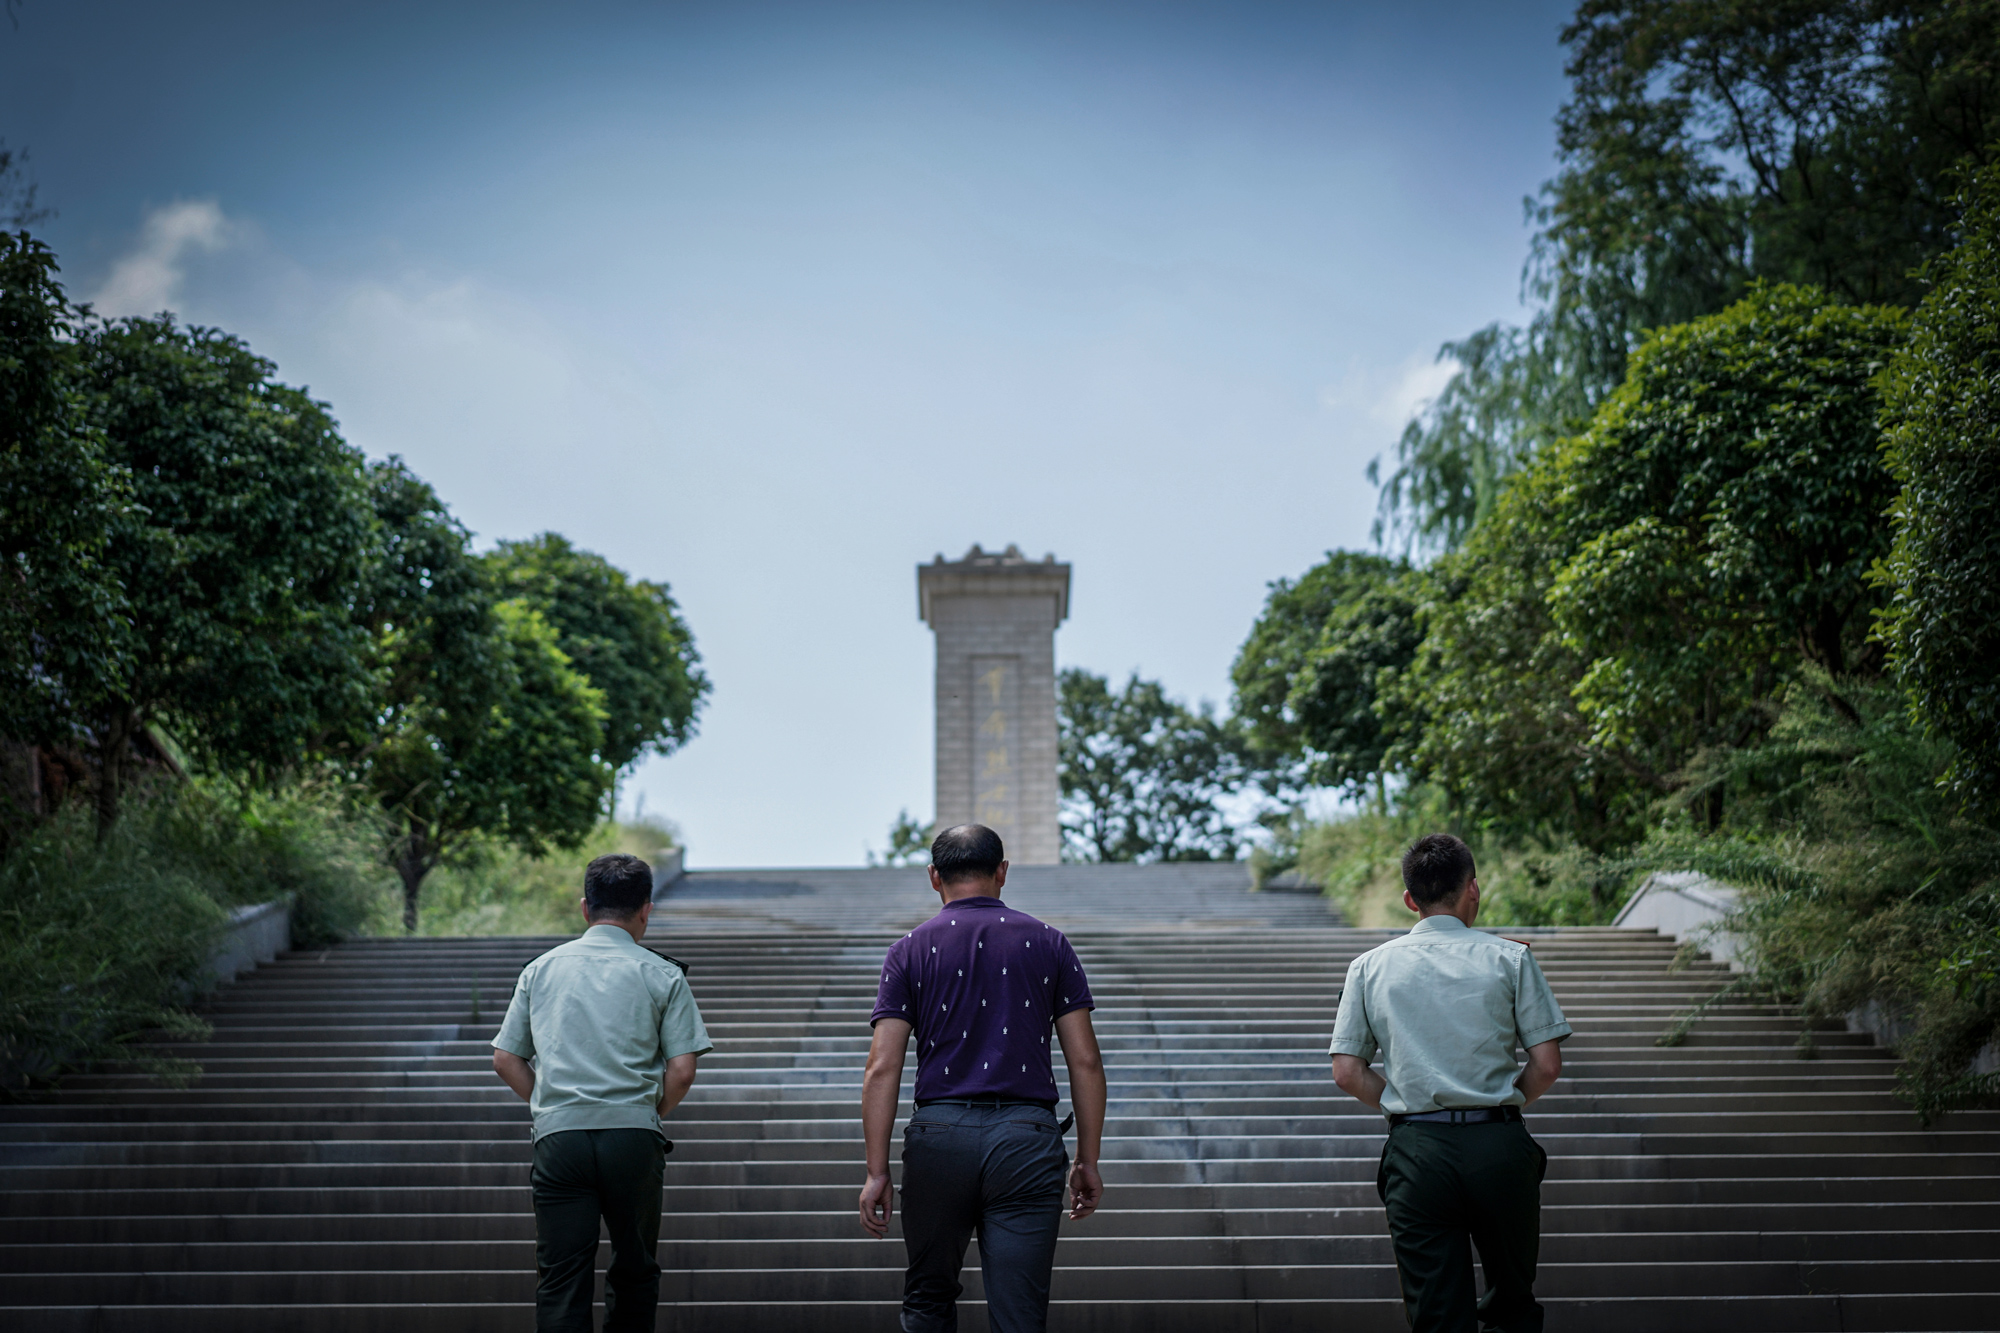 Most of the people who died in the August 12, 2015 Tianjin explosion were firefighters like Pang Ti. On August 10, 2017, two days before the second anniversary of Ti's death, his father, Pang Fangguo, and fellow firefighters visit his tomb at Martyrs' Cemetery in his hometown, Suizhou, in Hubei province.